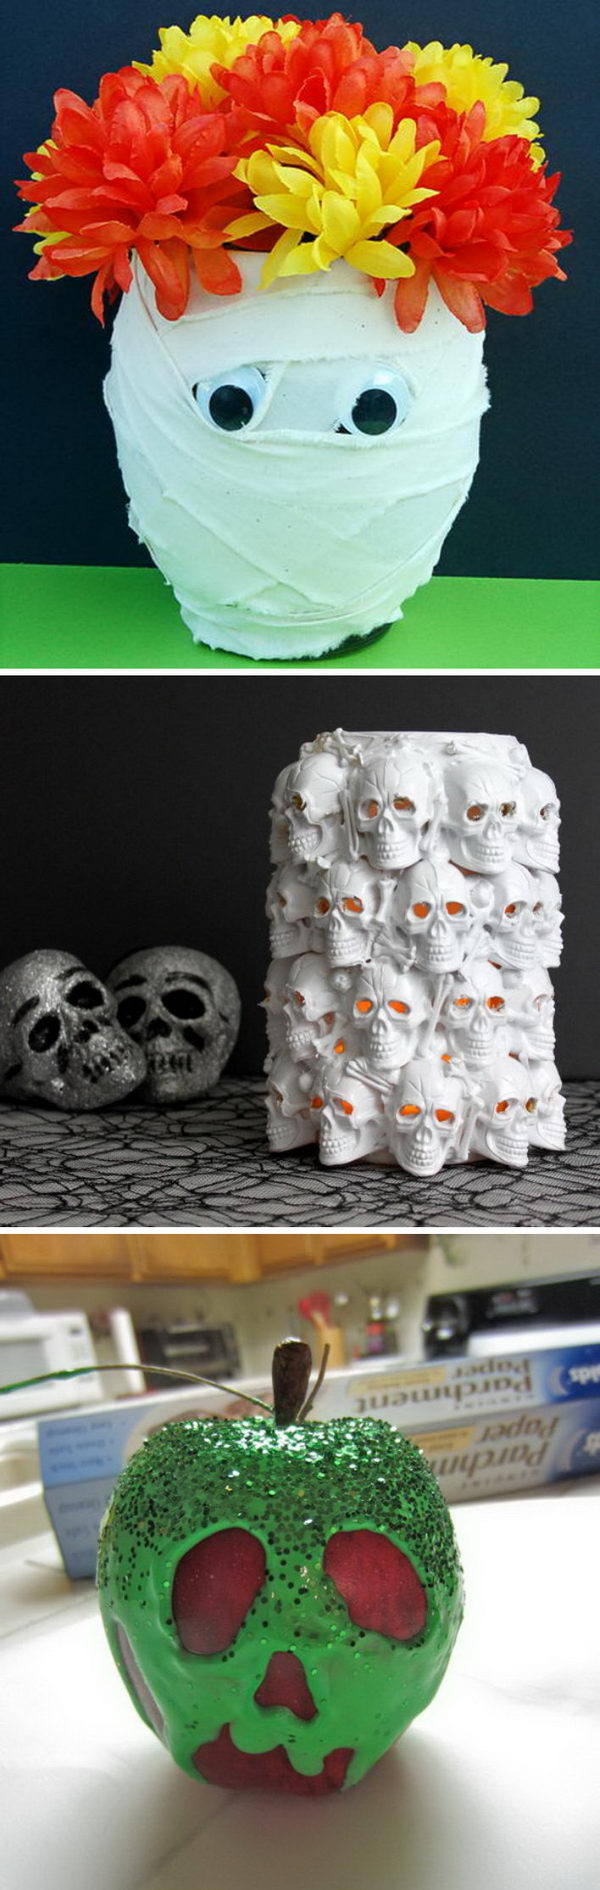 Dollar Store DIY Projects for Halloween.